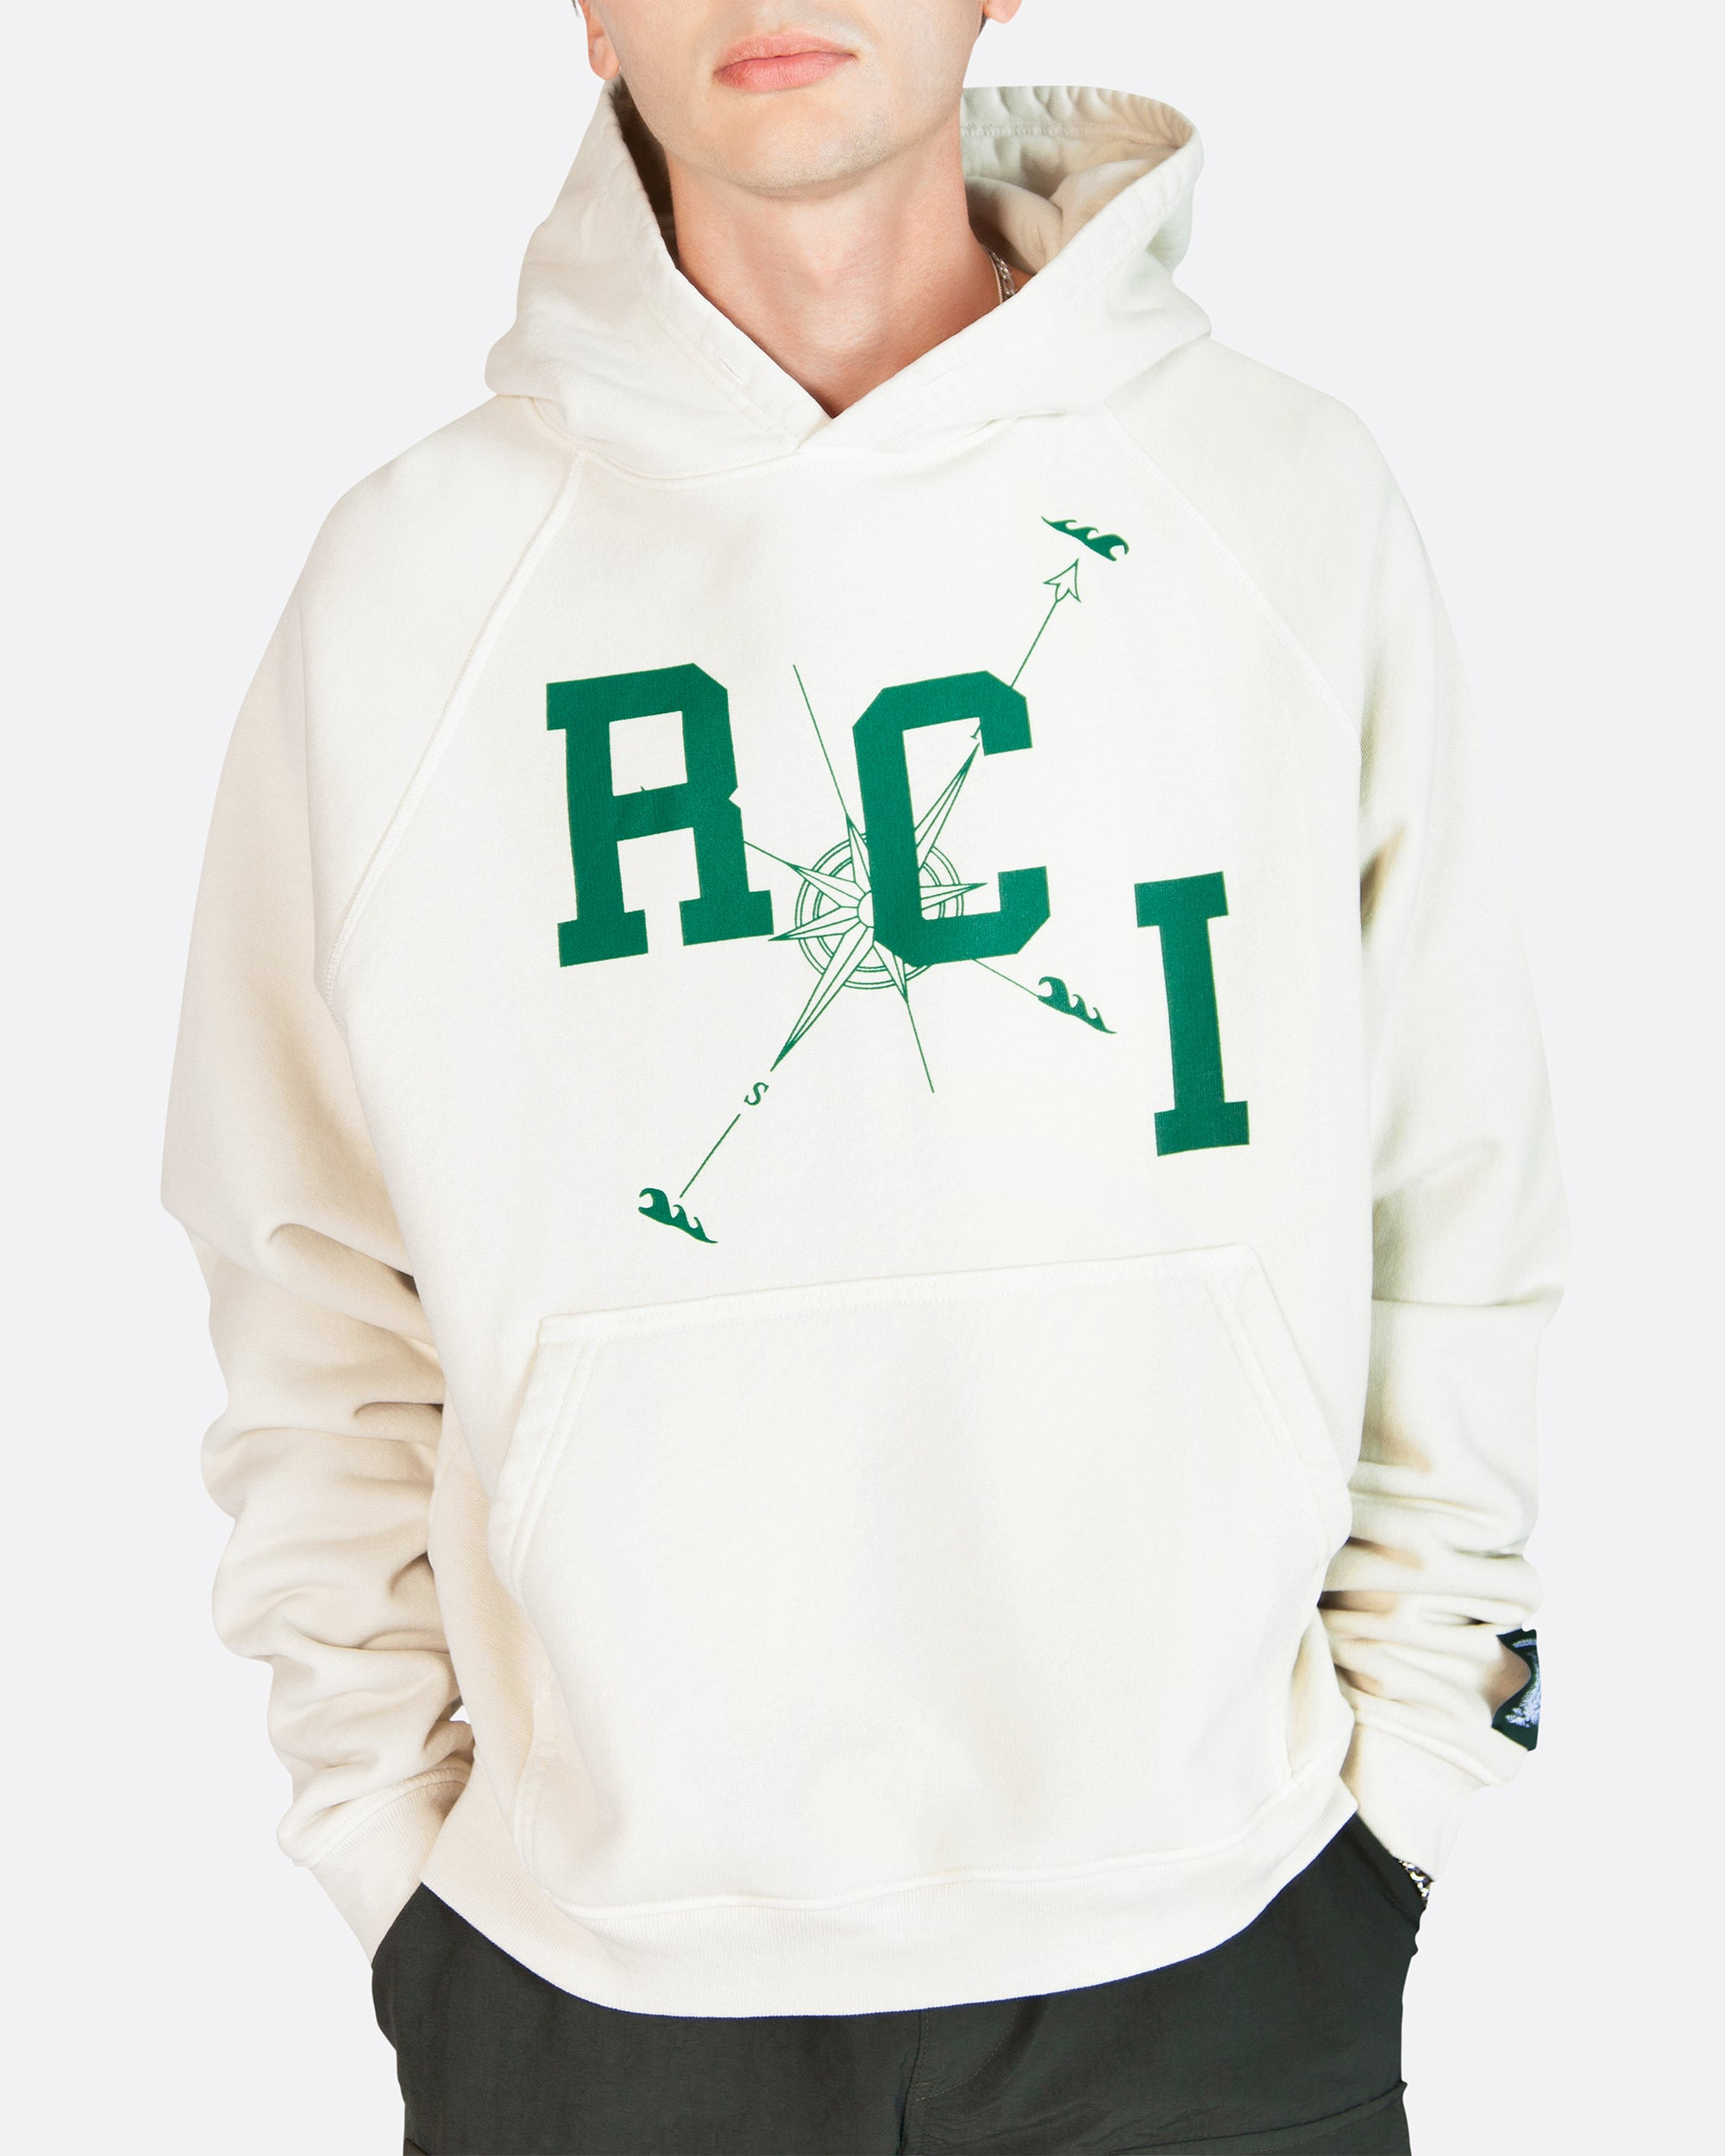 RCI Compass Aged Hooded Sweatshirt in Vintage White